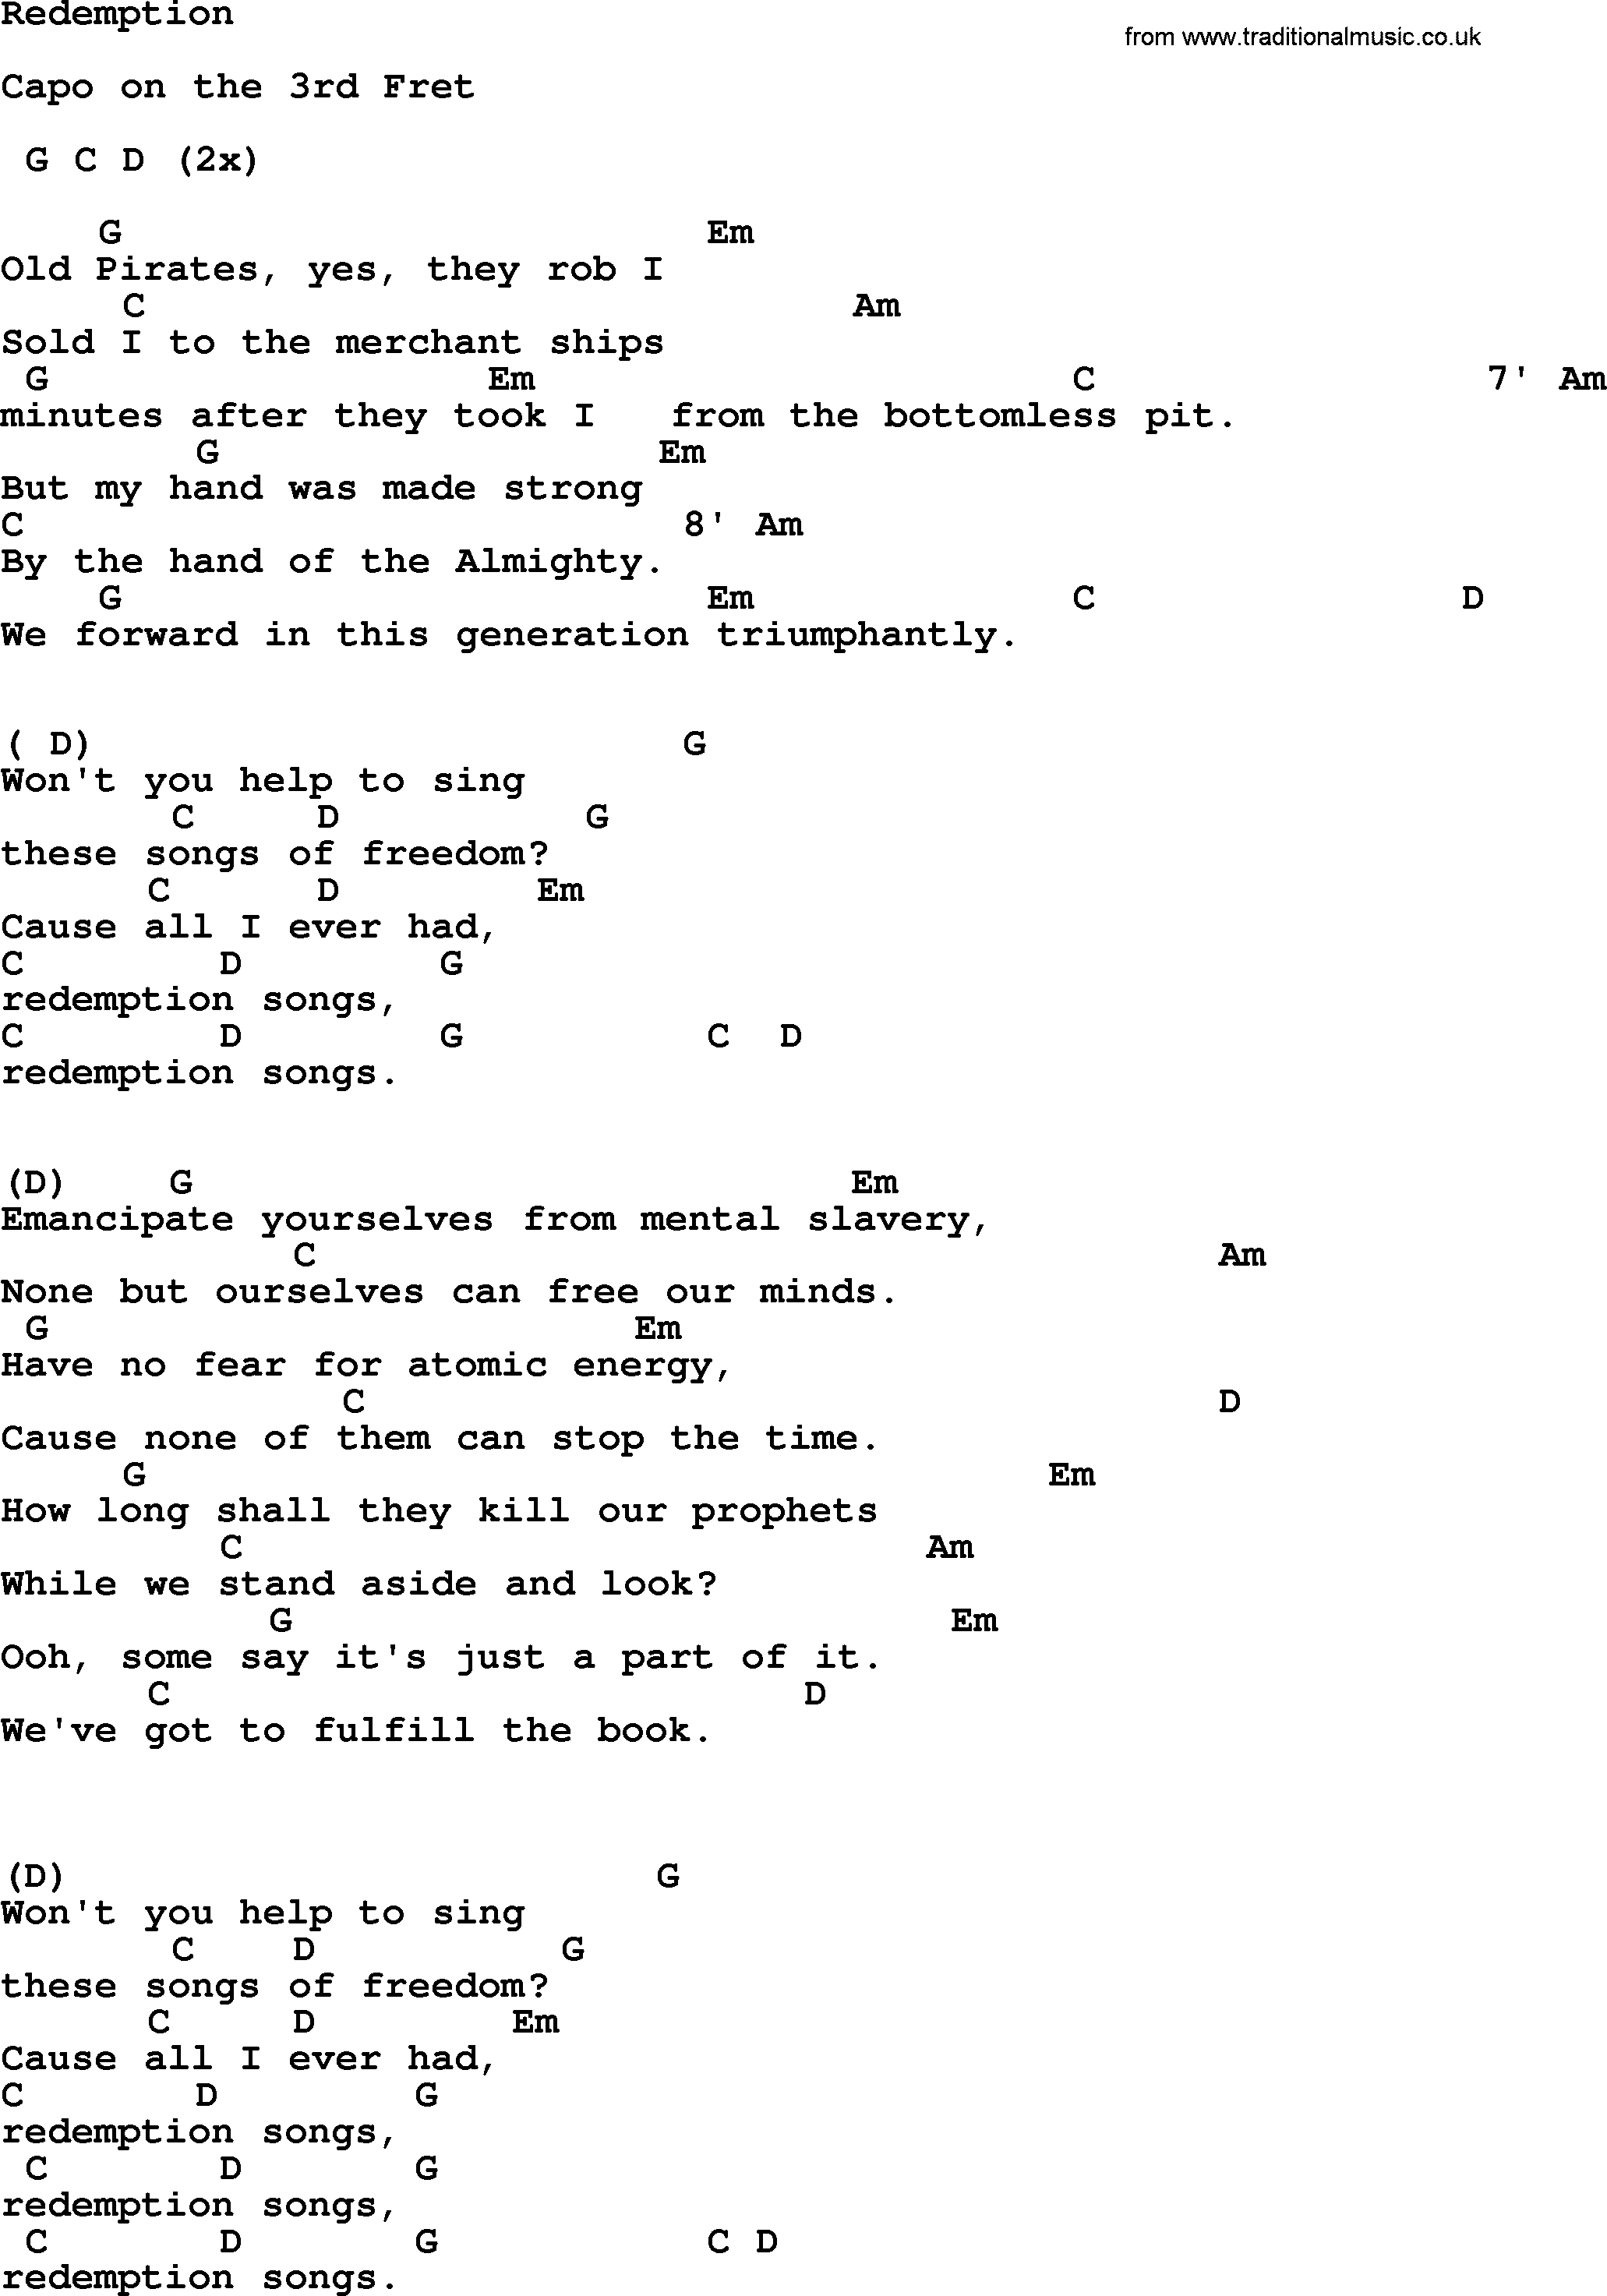 Johnny Cash song: Redemption, lyrics and chords